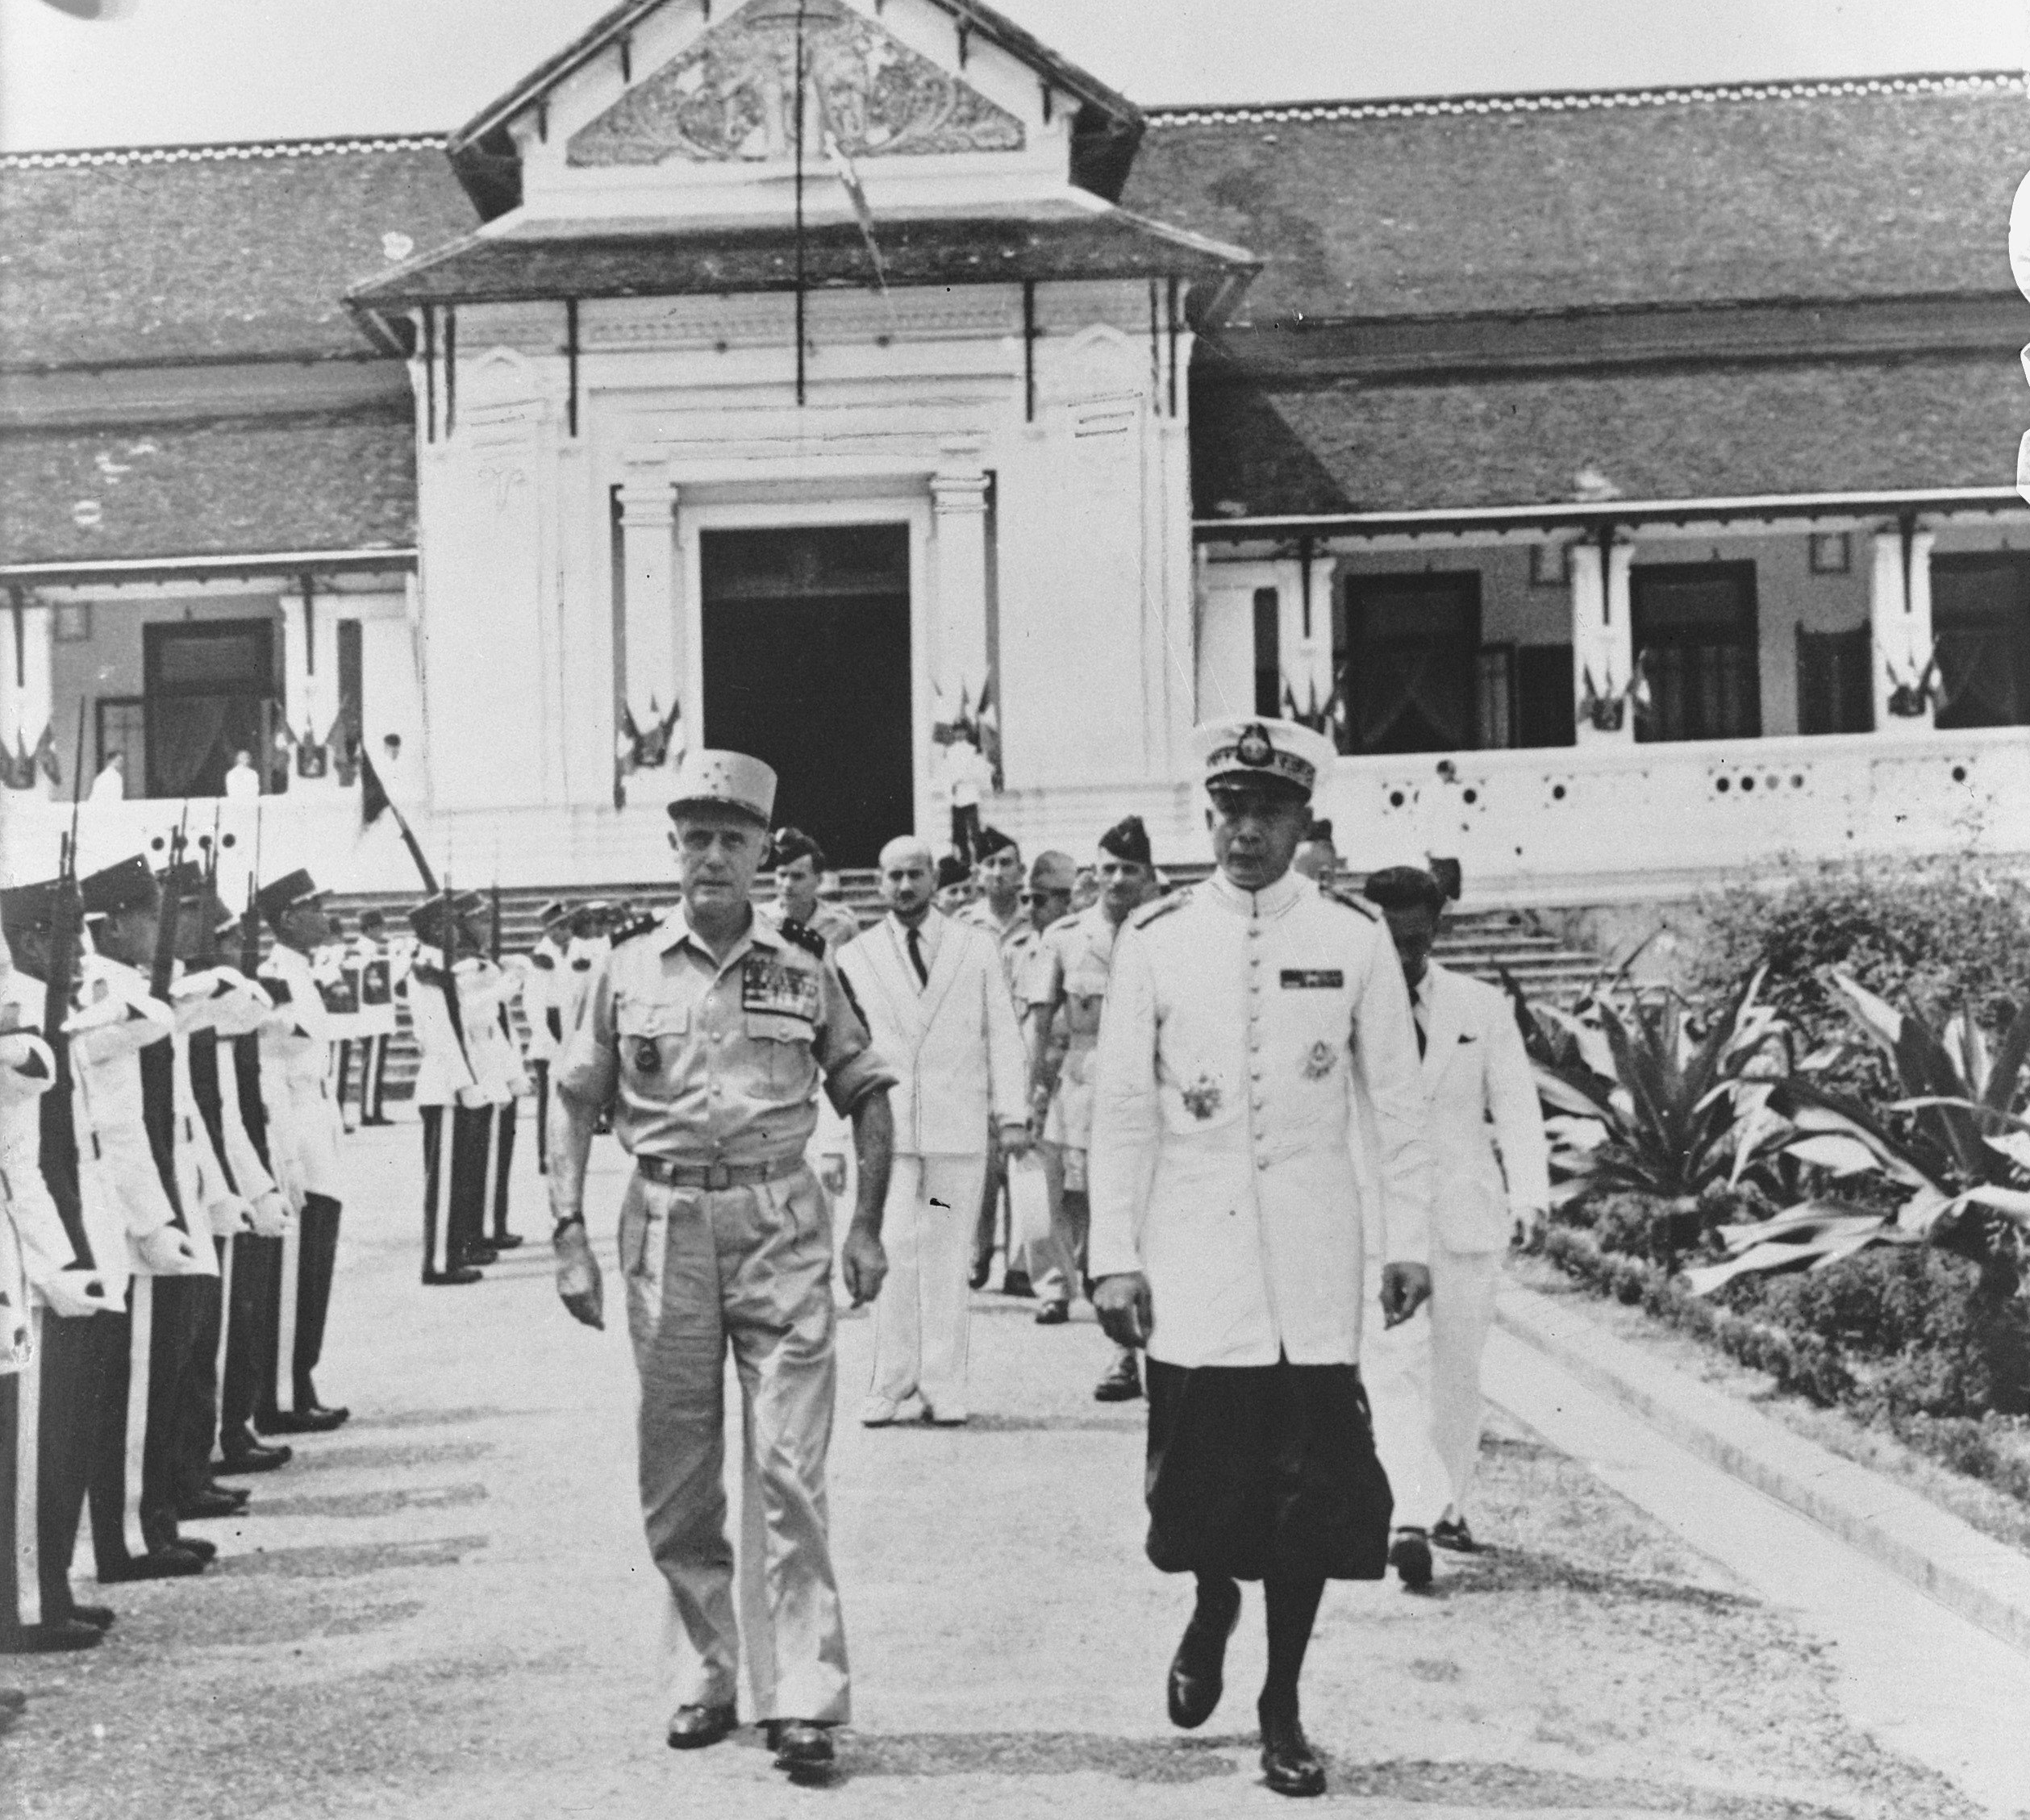 French General Salan and Prince Savang in Luang Prabang on May 4, 1953.